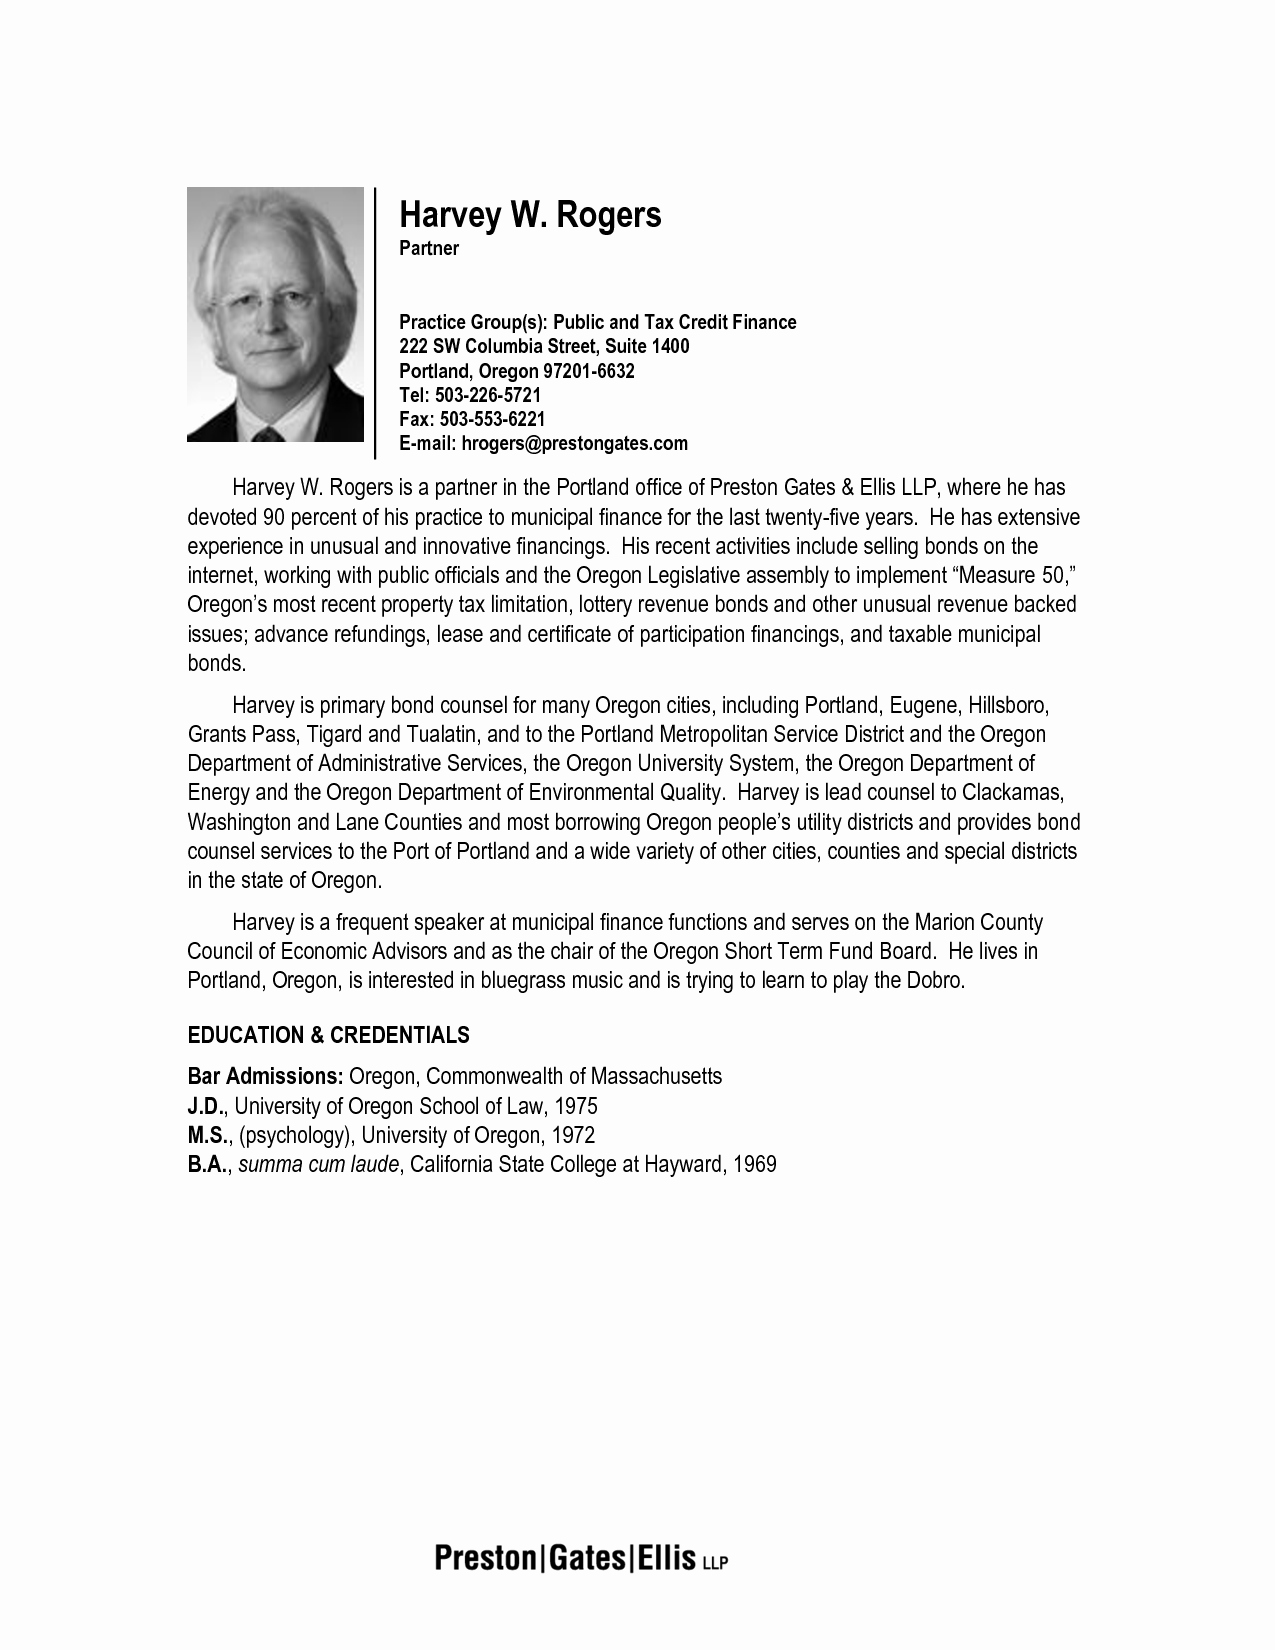 Professional Bio Template Word New Professional Biography Template Microsoft Word form Bio